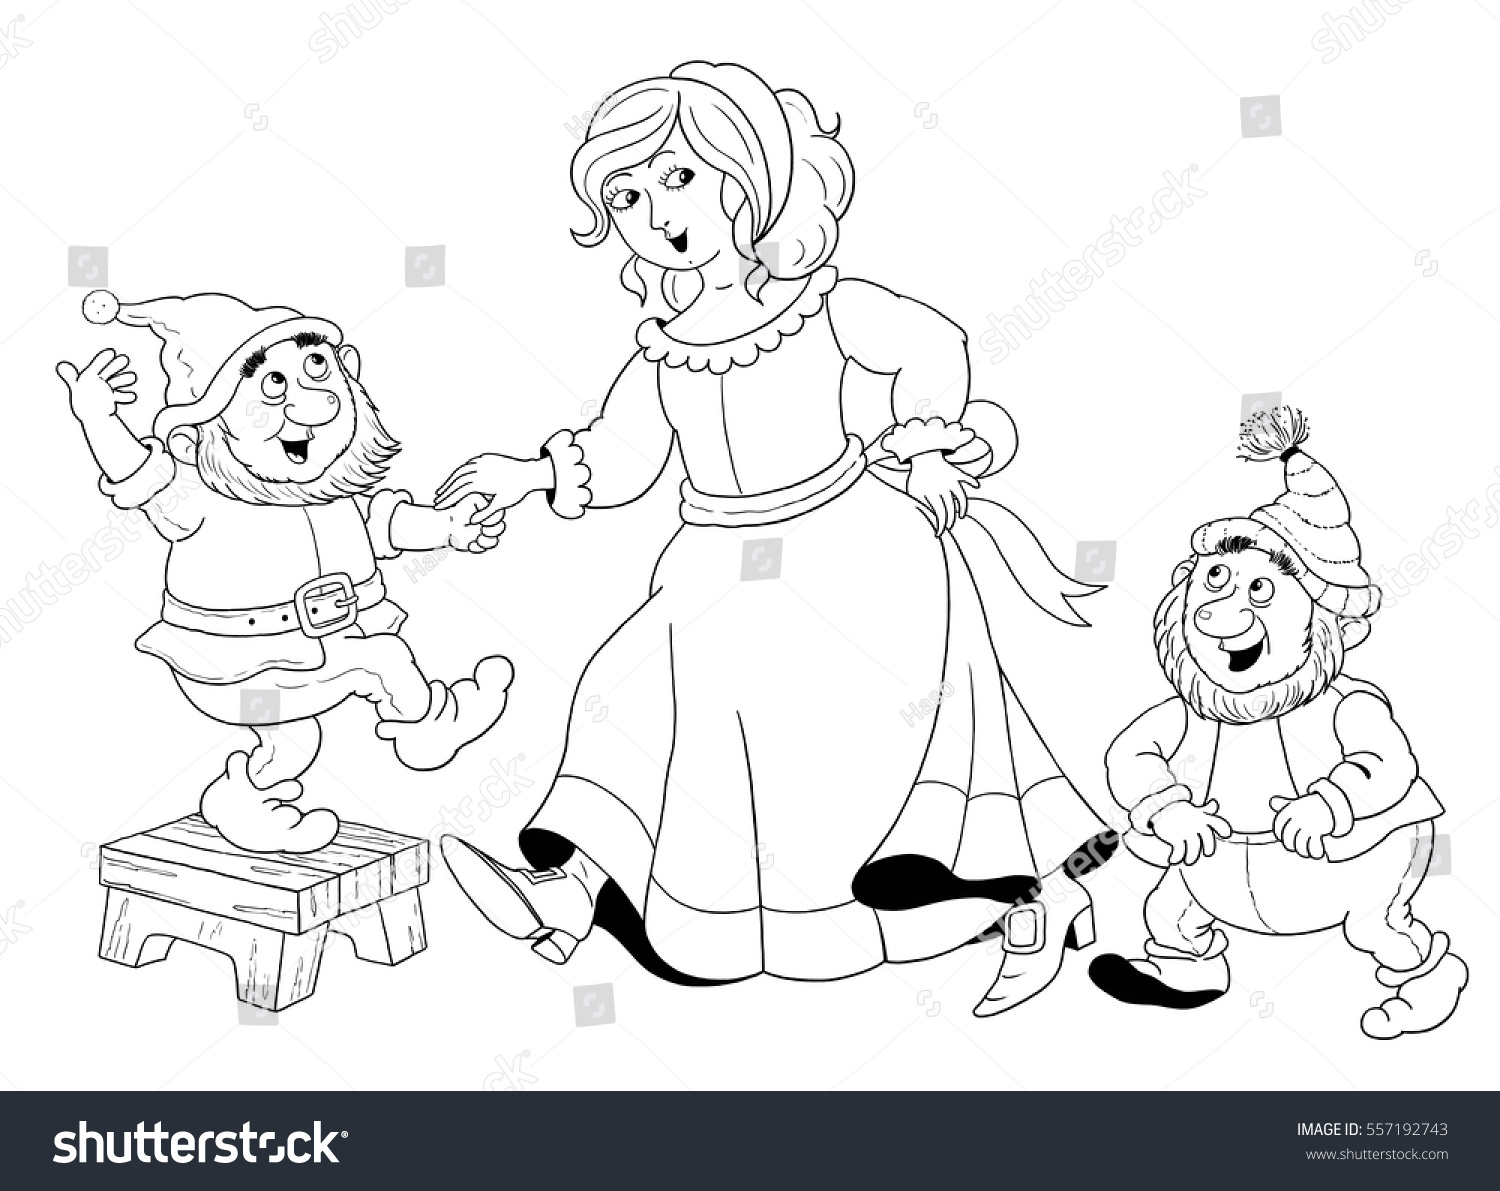 Royalty Free Stock Illustration of Snow White Seven Dwarfs Fairy ...